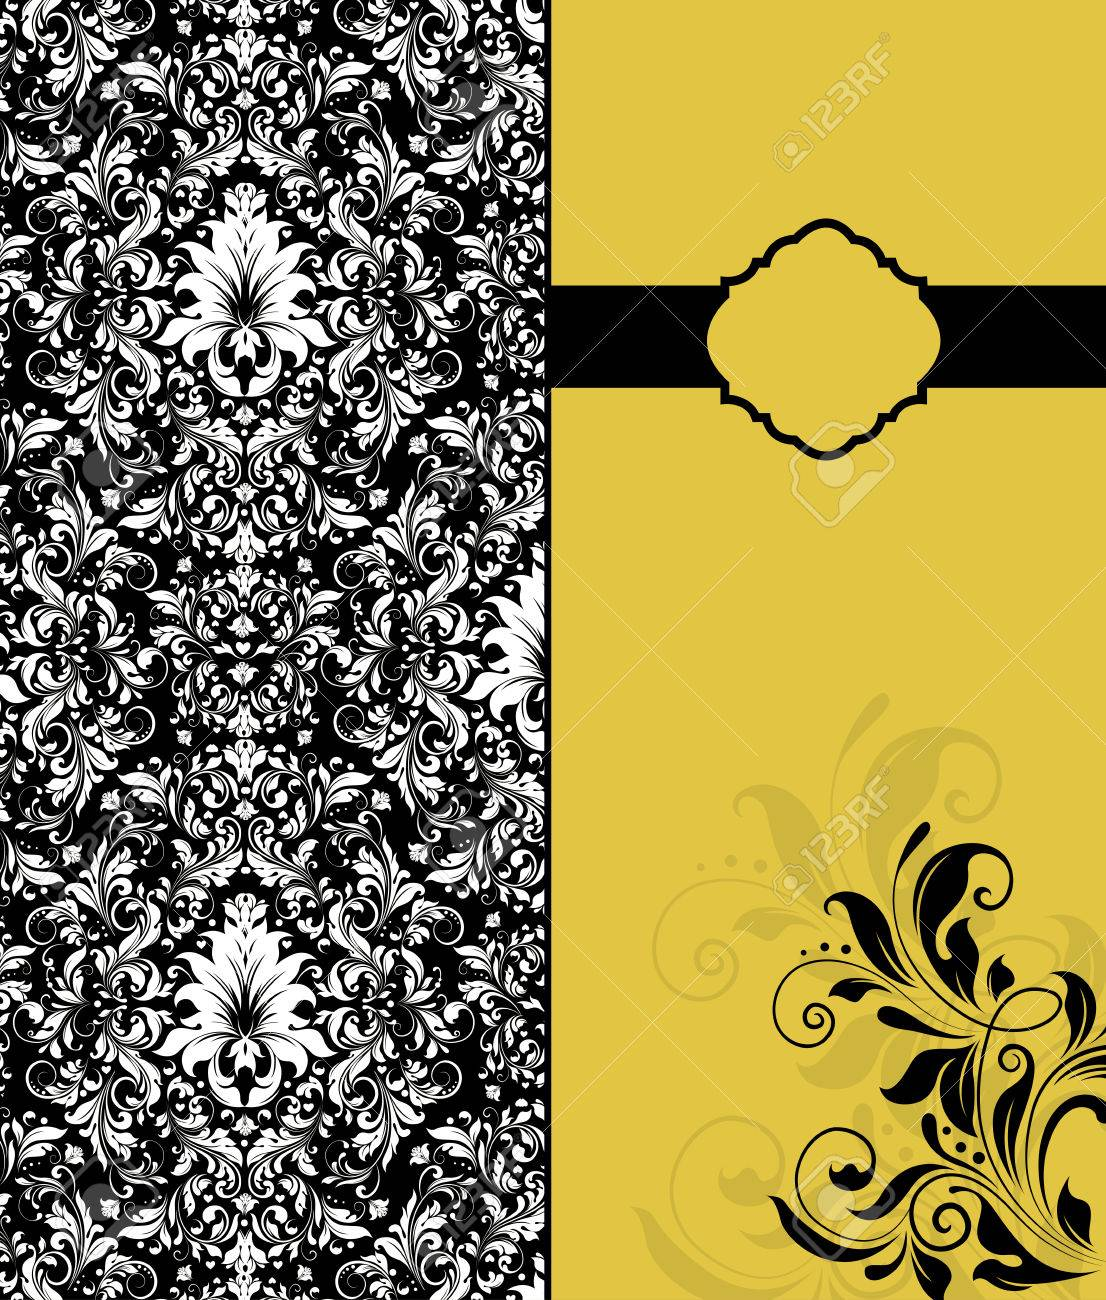 Vintage invitation card with ornate elegant retro abstract floral white flowers on black background and black flowers on saffron yellow background with ribbon vector illustration vintage invitation card stopboris Image collections